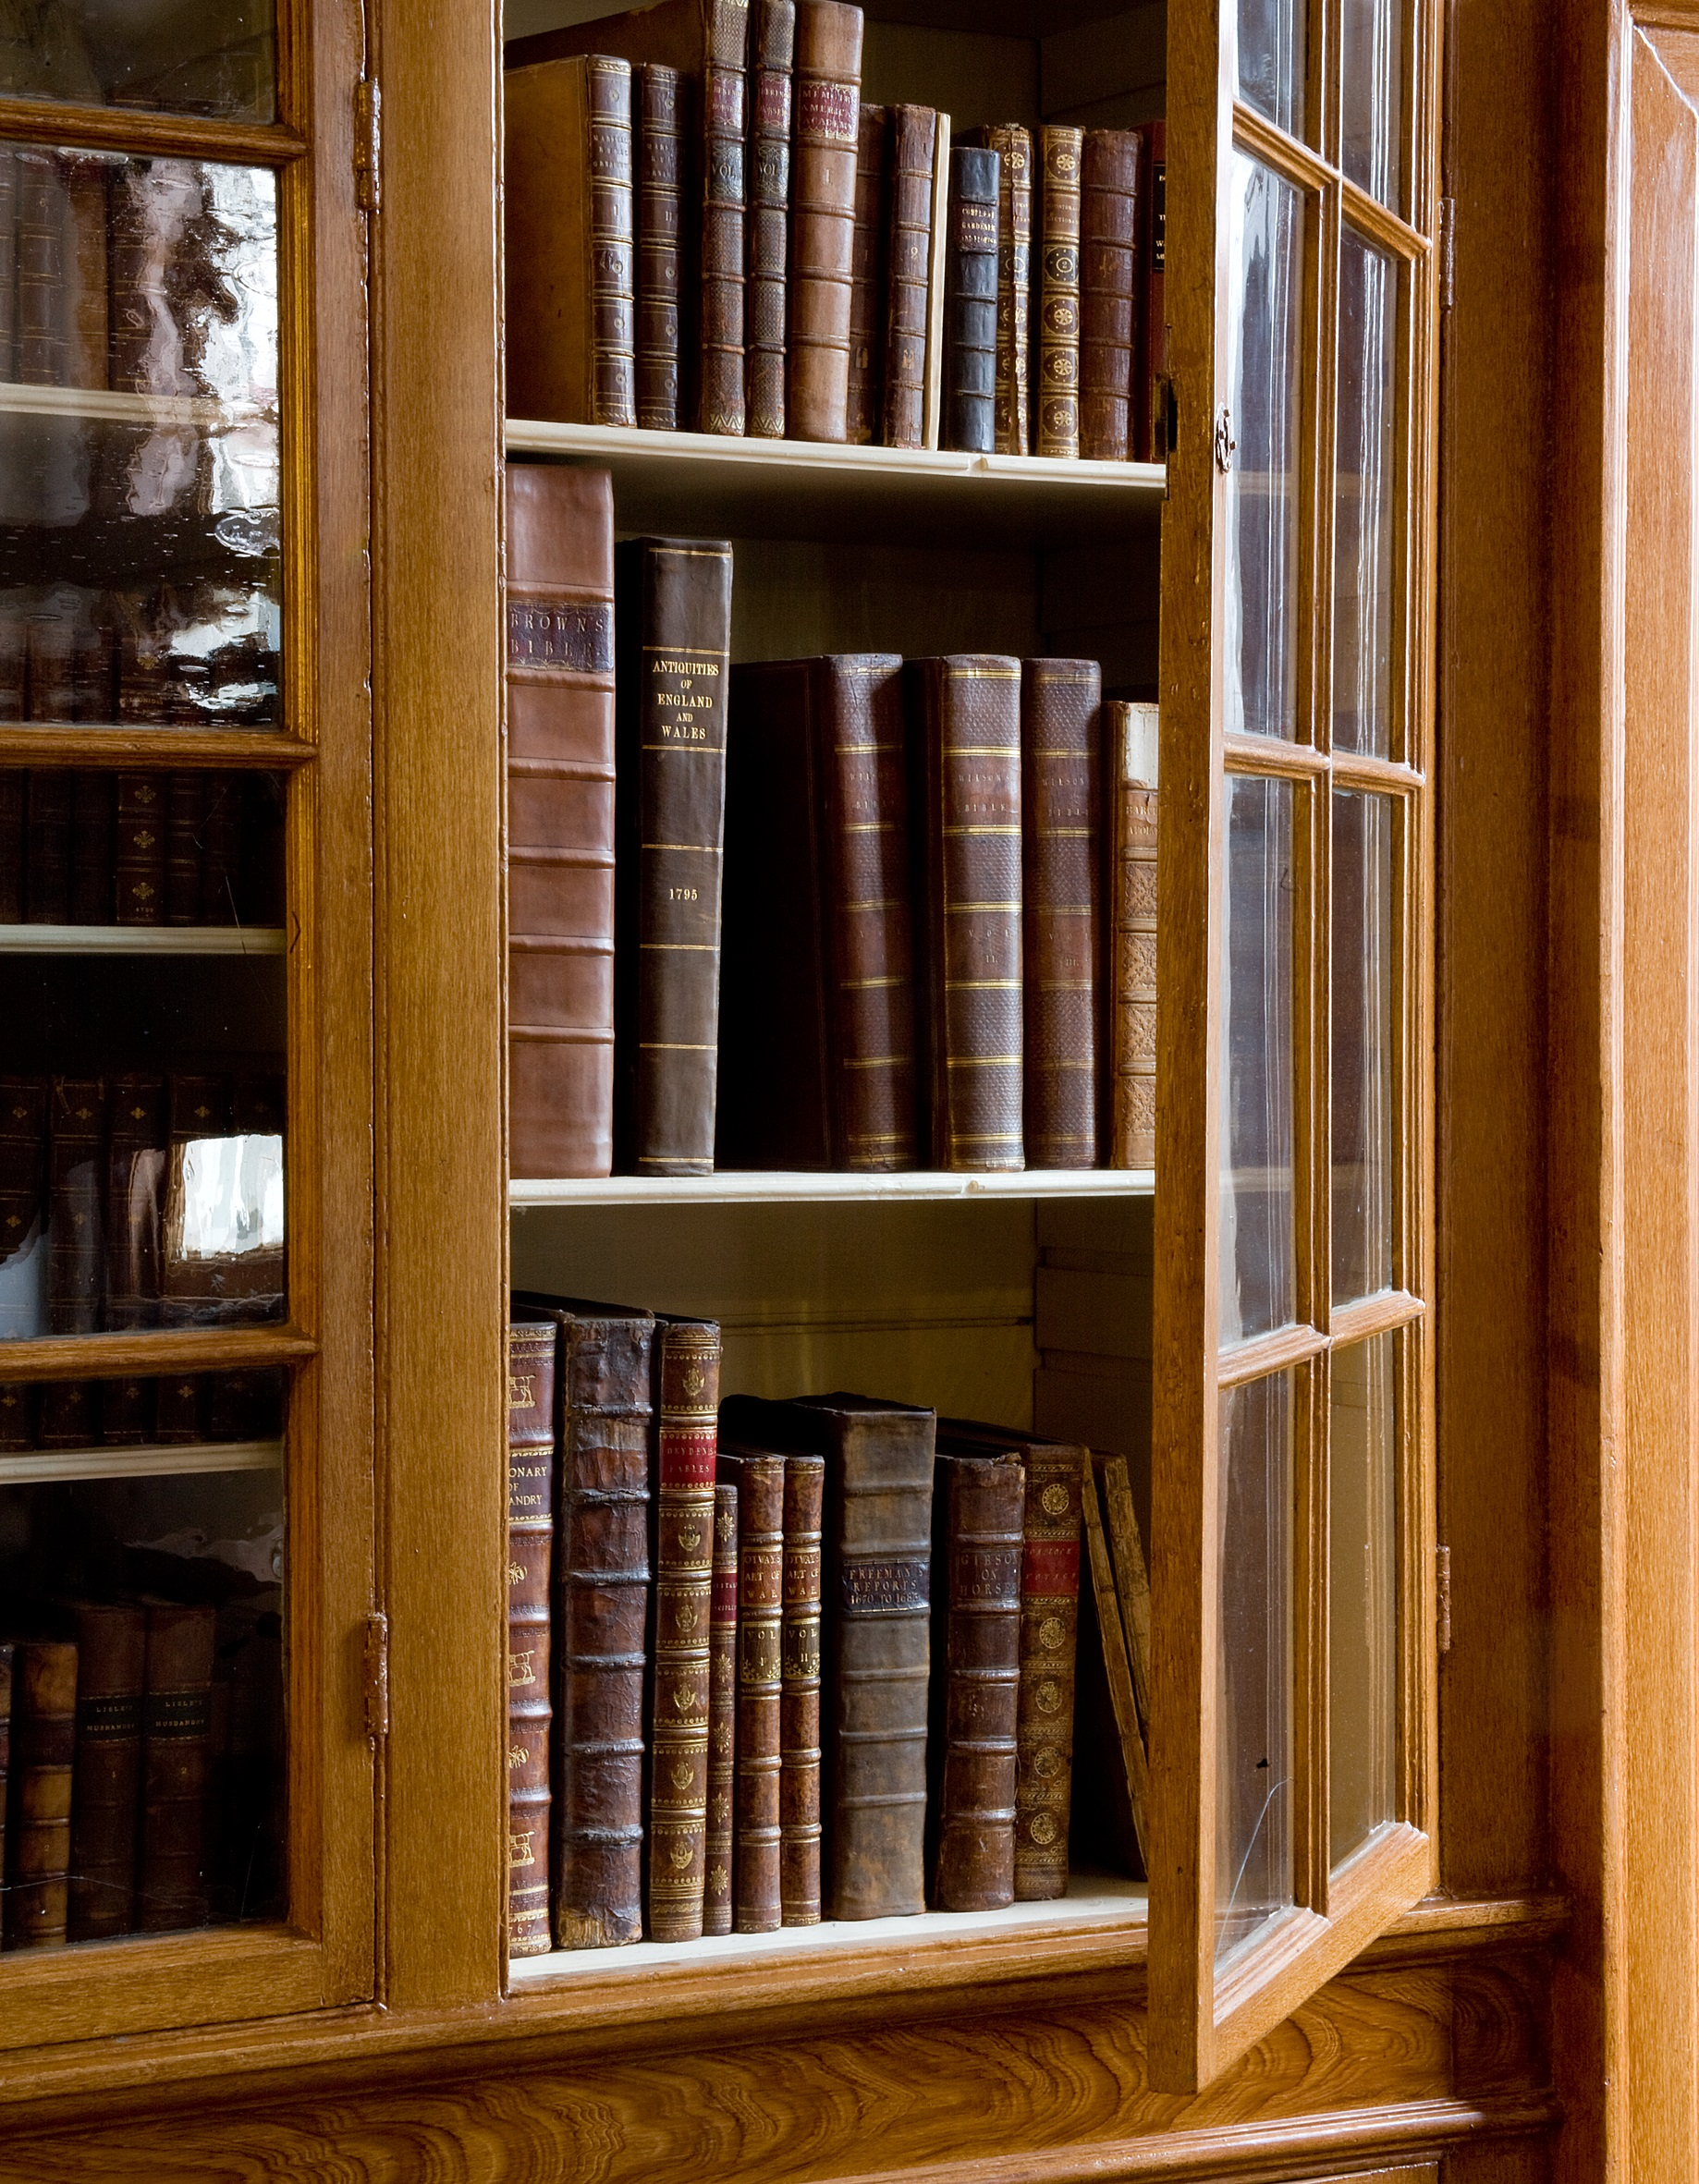 The bookcase in Washington's study.